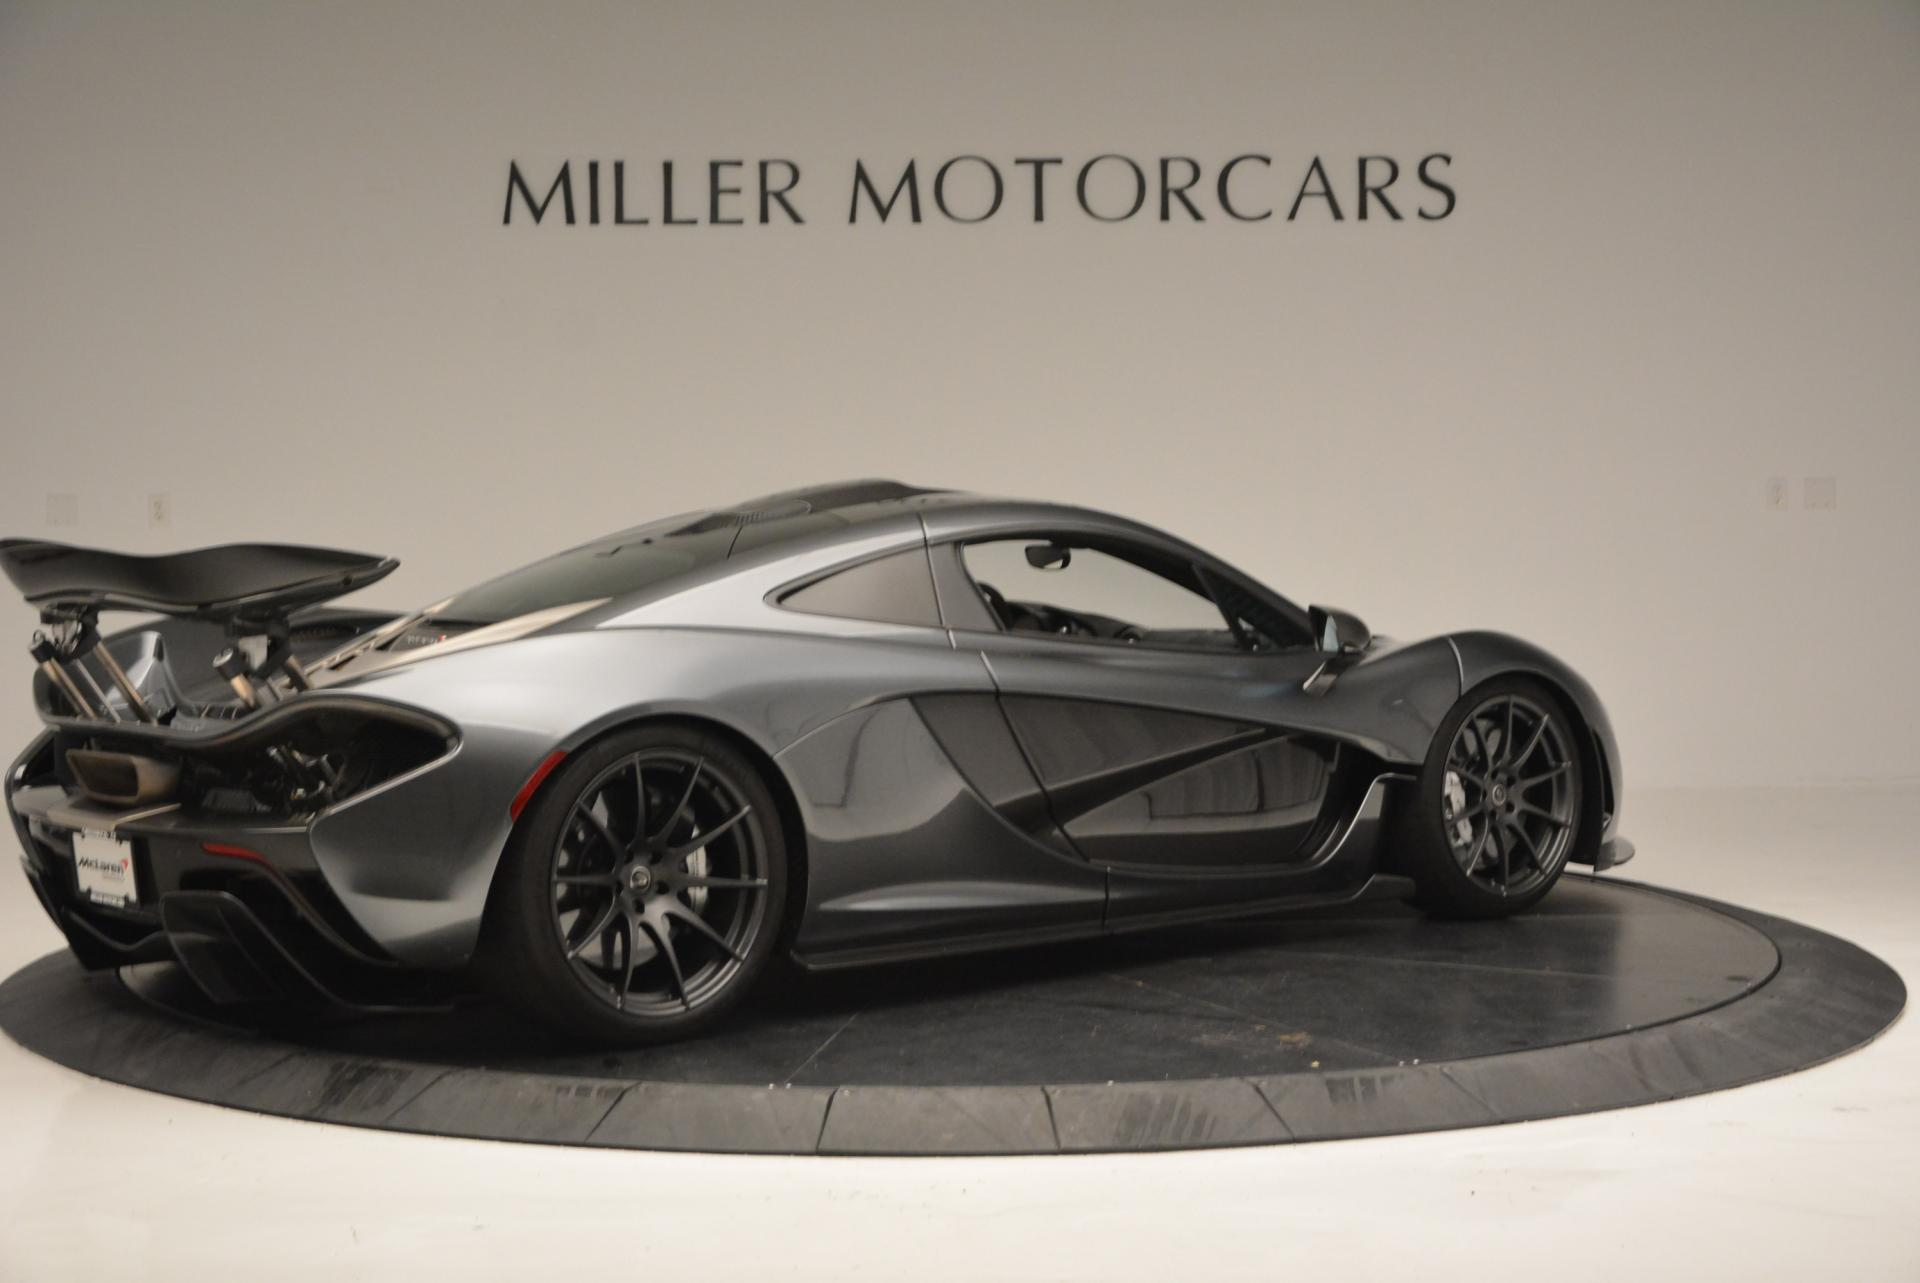 Used 2014 McLaren P1 Coupe For Sale In Greenwich, CT. Alfa Romeo of Greenwich, 3100 513_p11